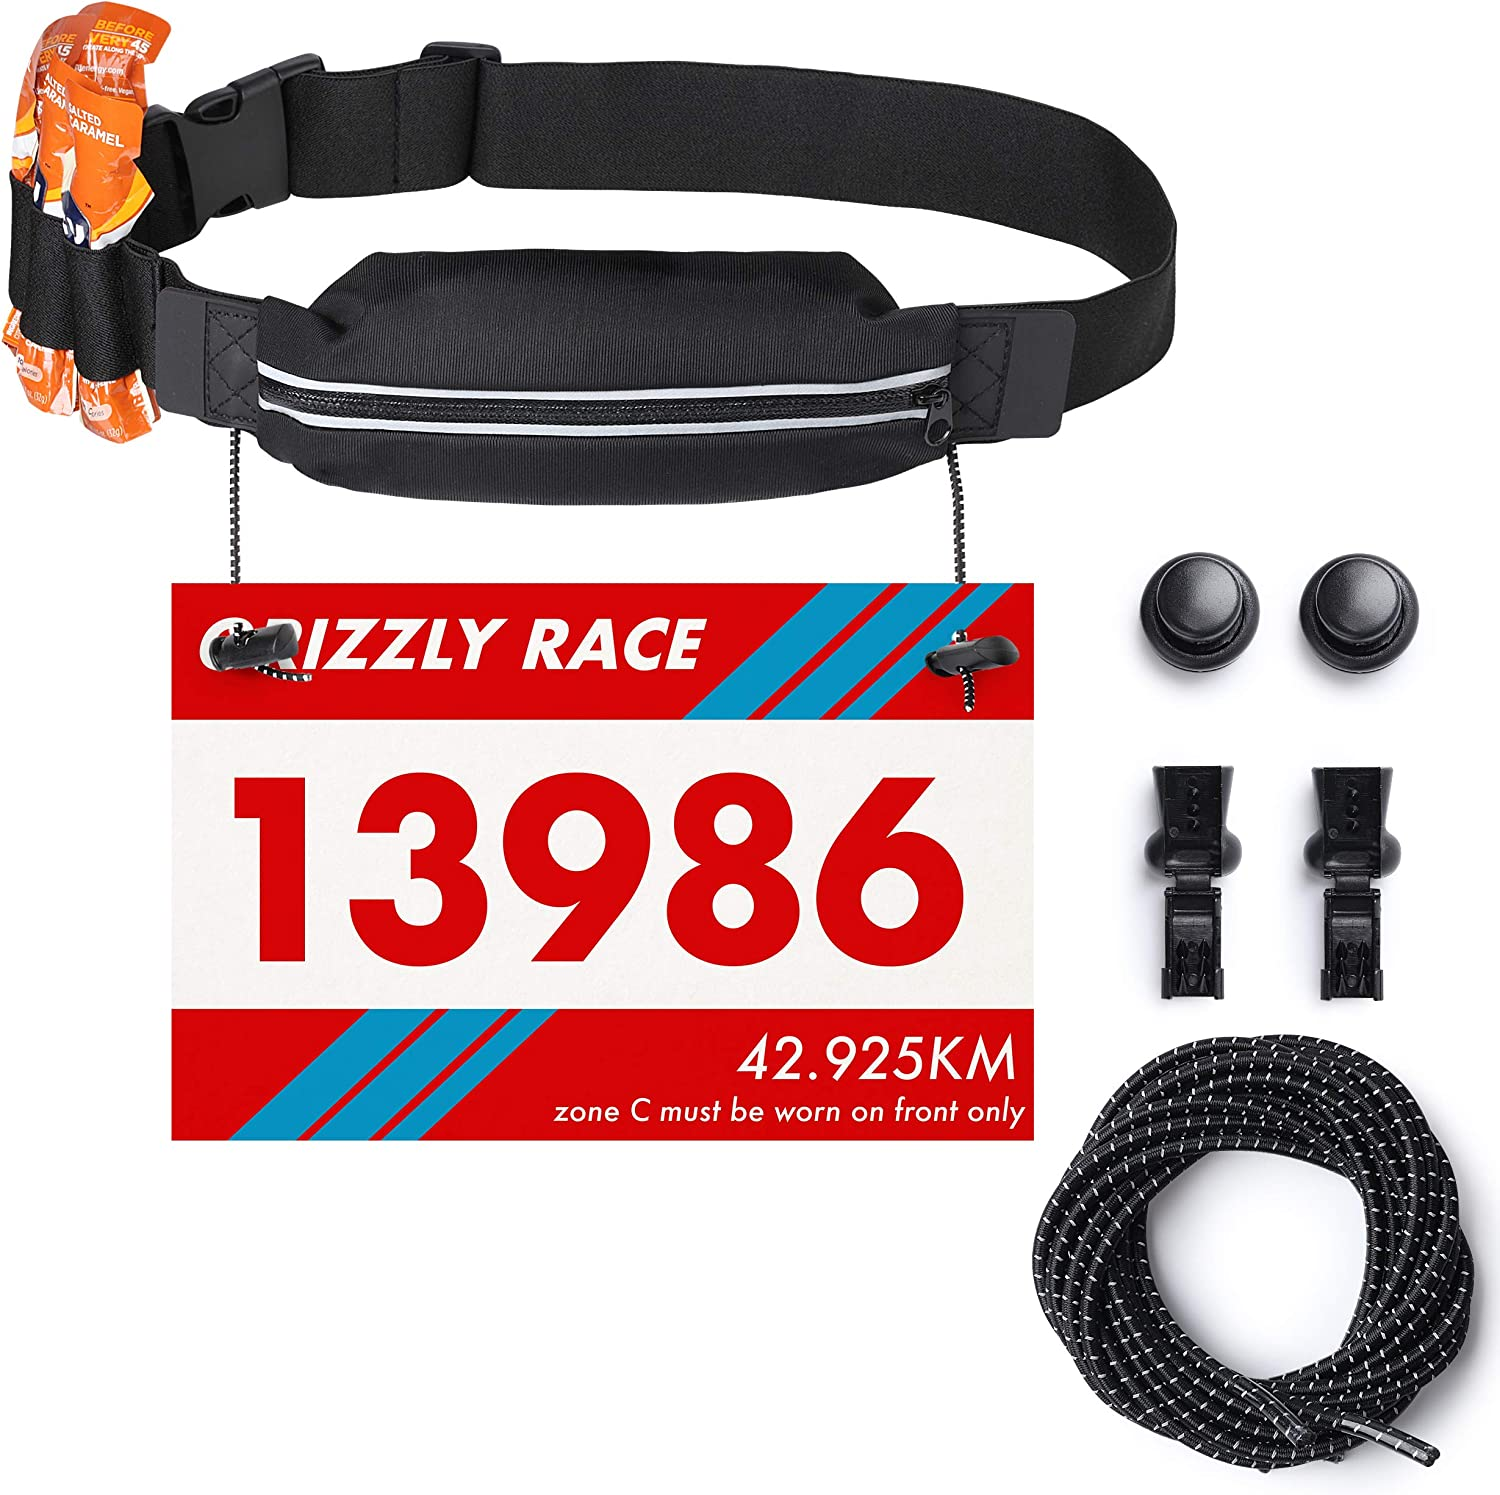 Running Race Number Bib Belt With Elastic Webbing – Fits All Size For Marathon, Triathlon and Cycling – Elastic No Tie Shoe Laces Included Black Belt Black Laces